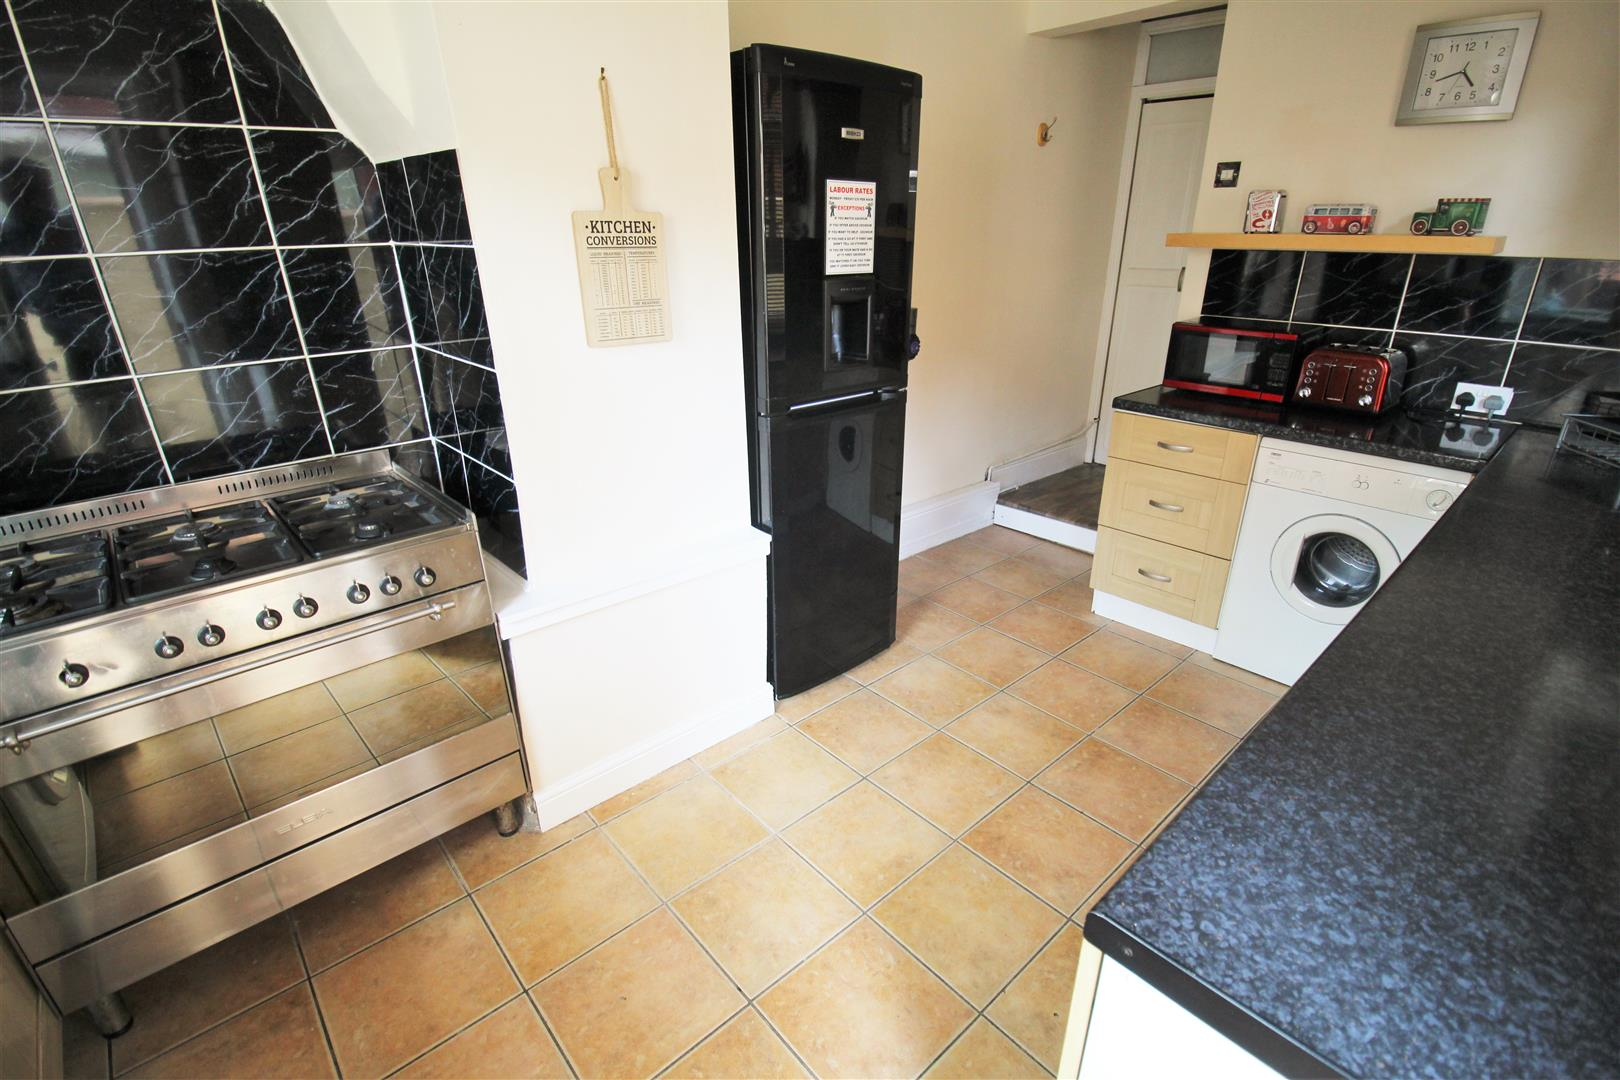 3 Bedrooms, House - Terraced, Gondover Avenue, Liverpool